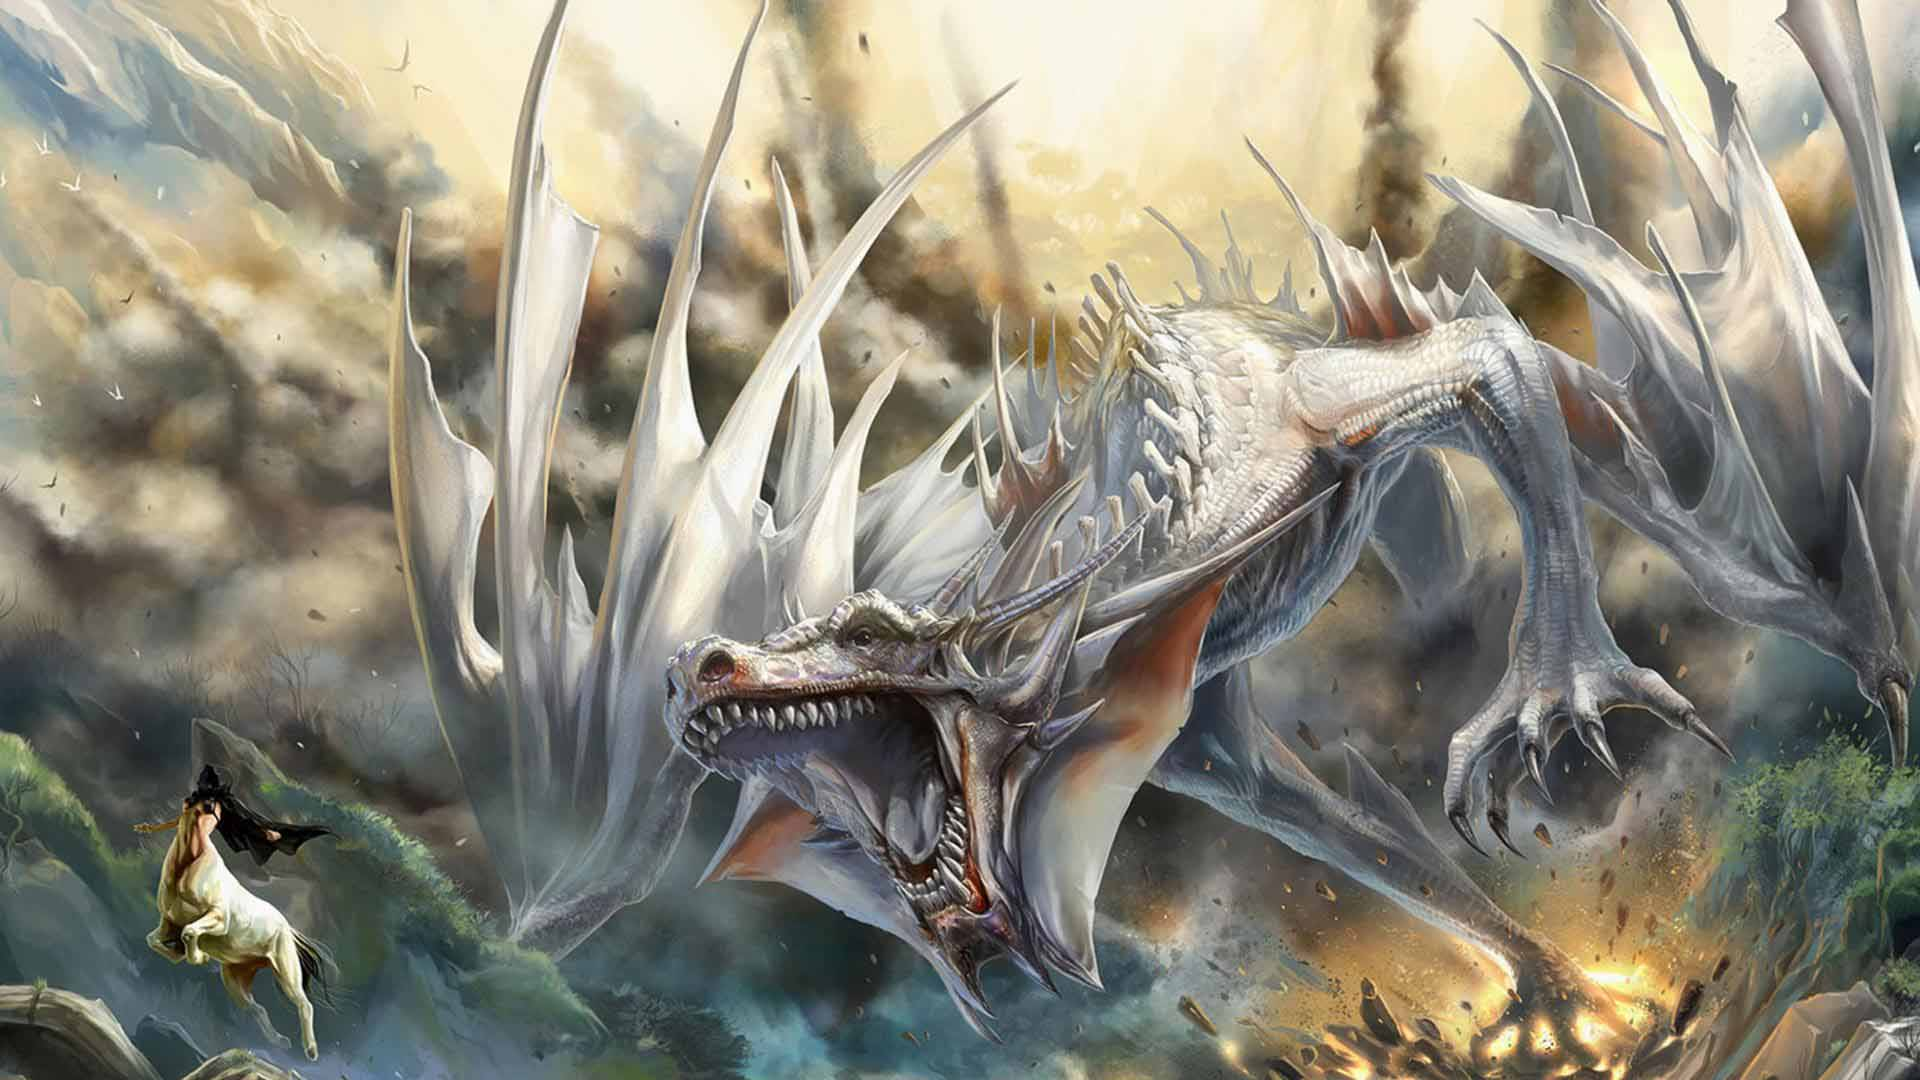 Dragon Wallpapers 1080p  Wallpaper Cave